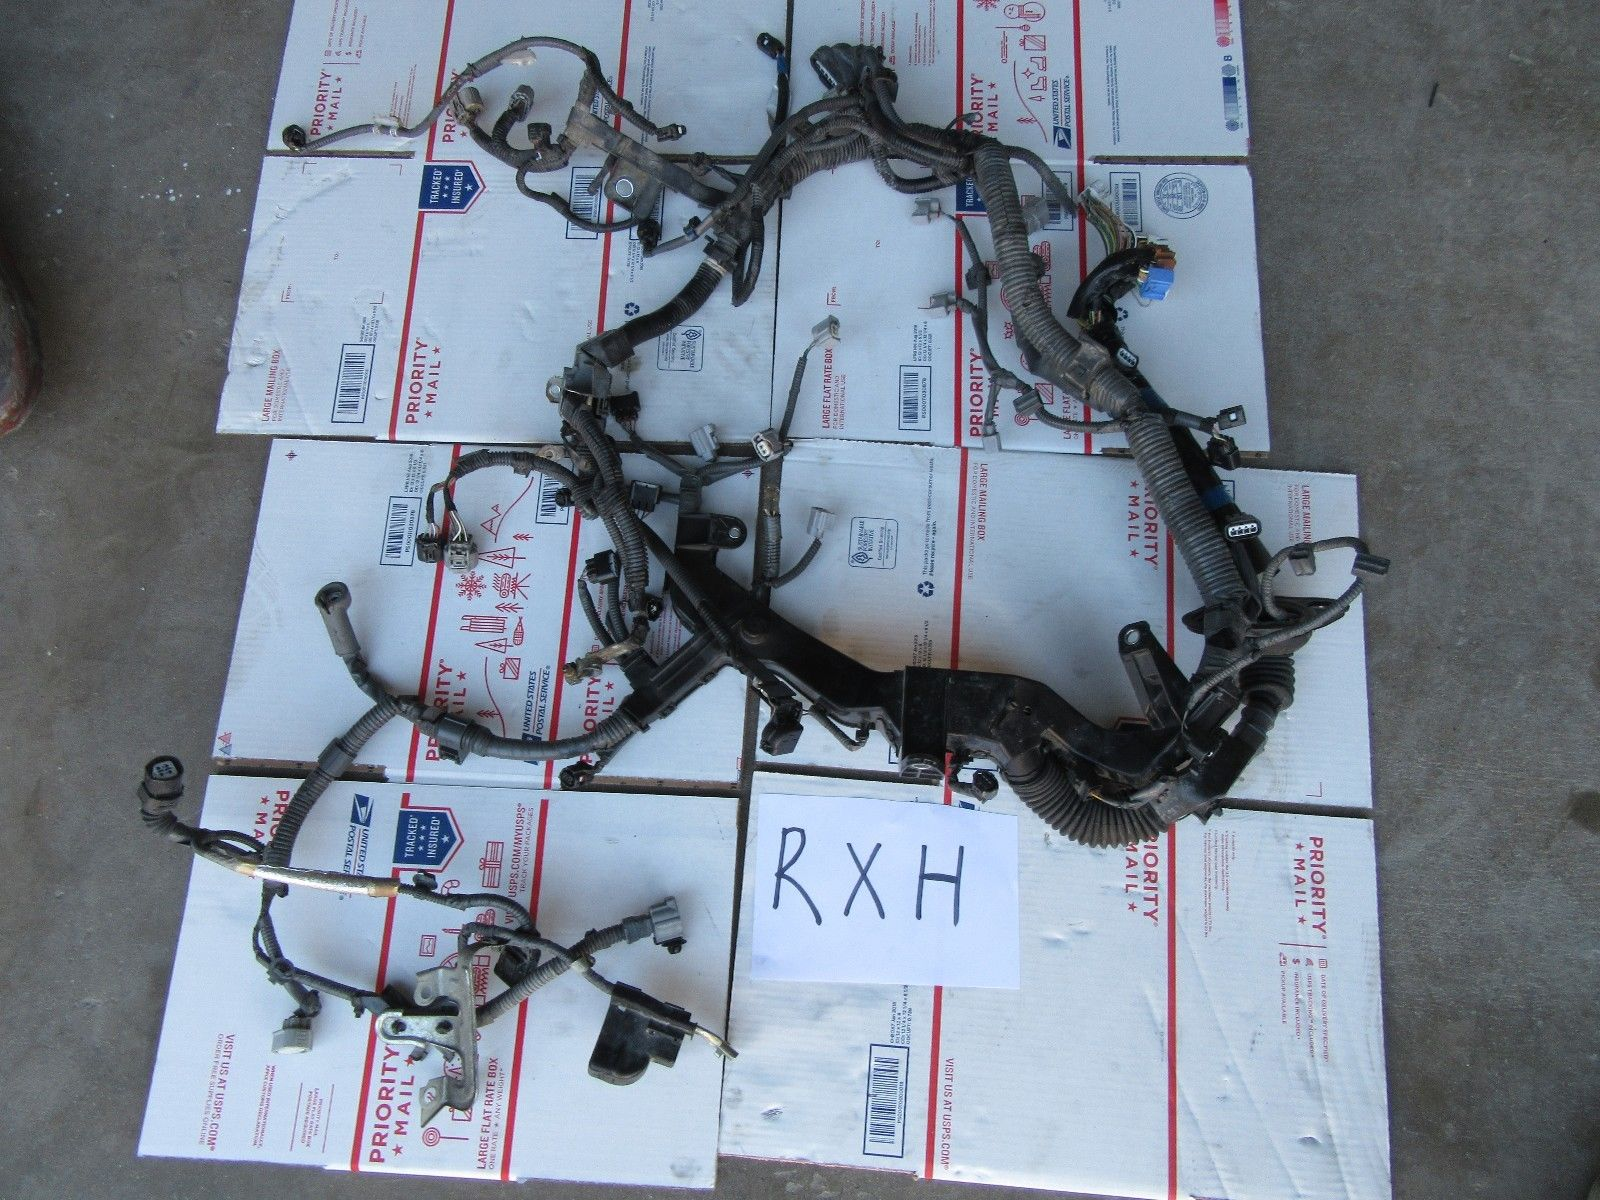 04-09 LEXUS RX330 RX350 ENGINE WIRING HARNESS 82121-0E051 OEM 82121-0E051